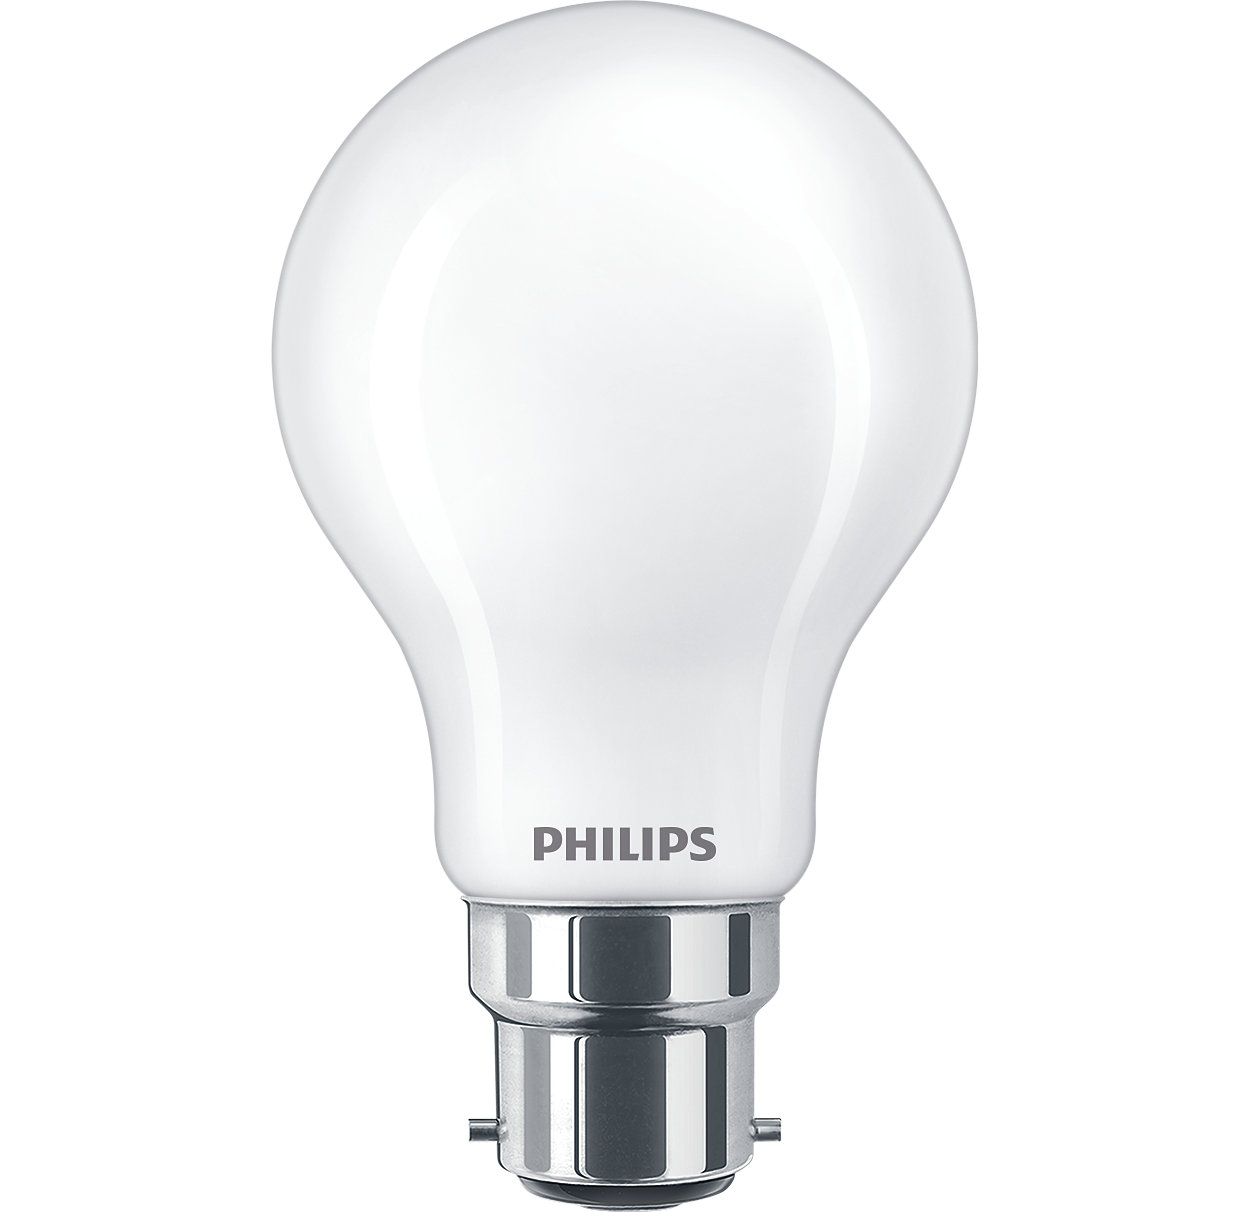 Dimmable glass LED bulbs with less energy consumption